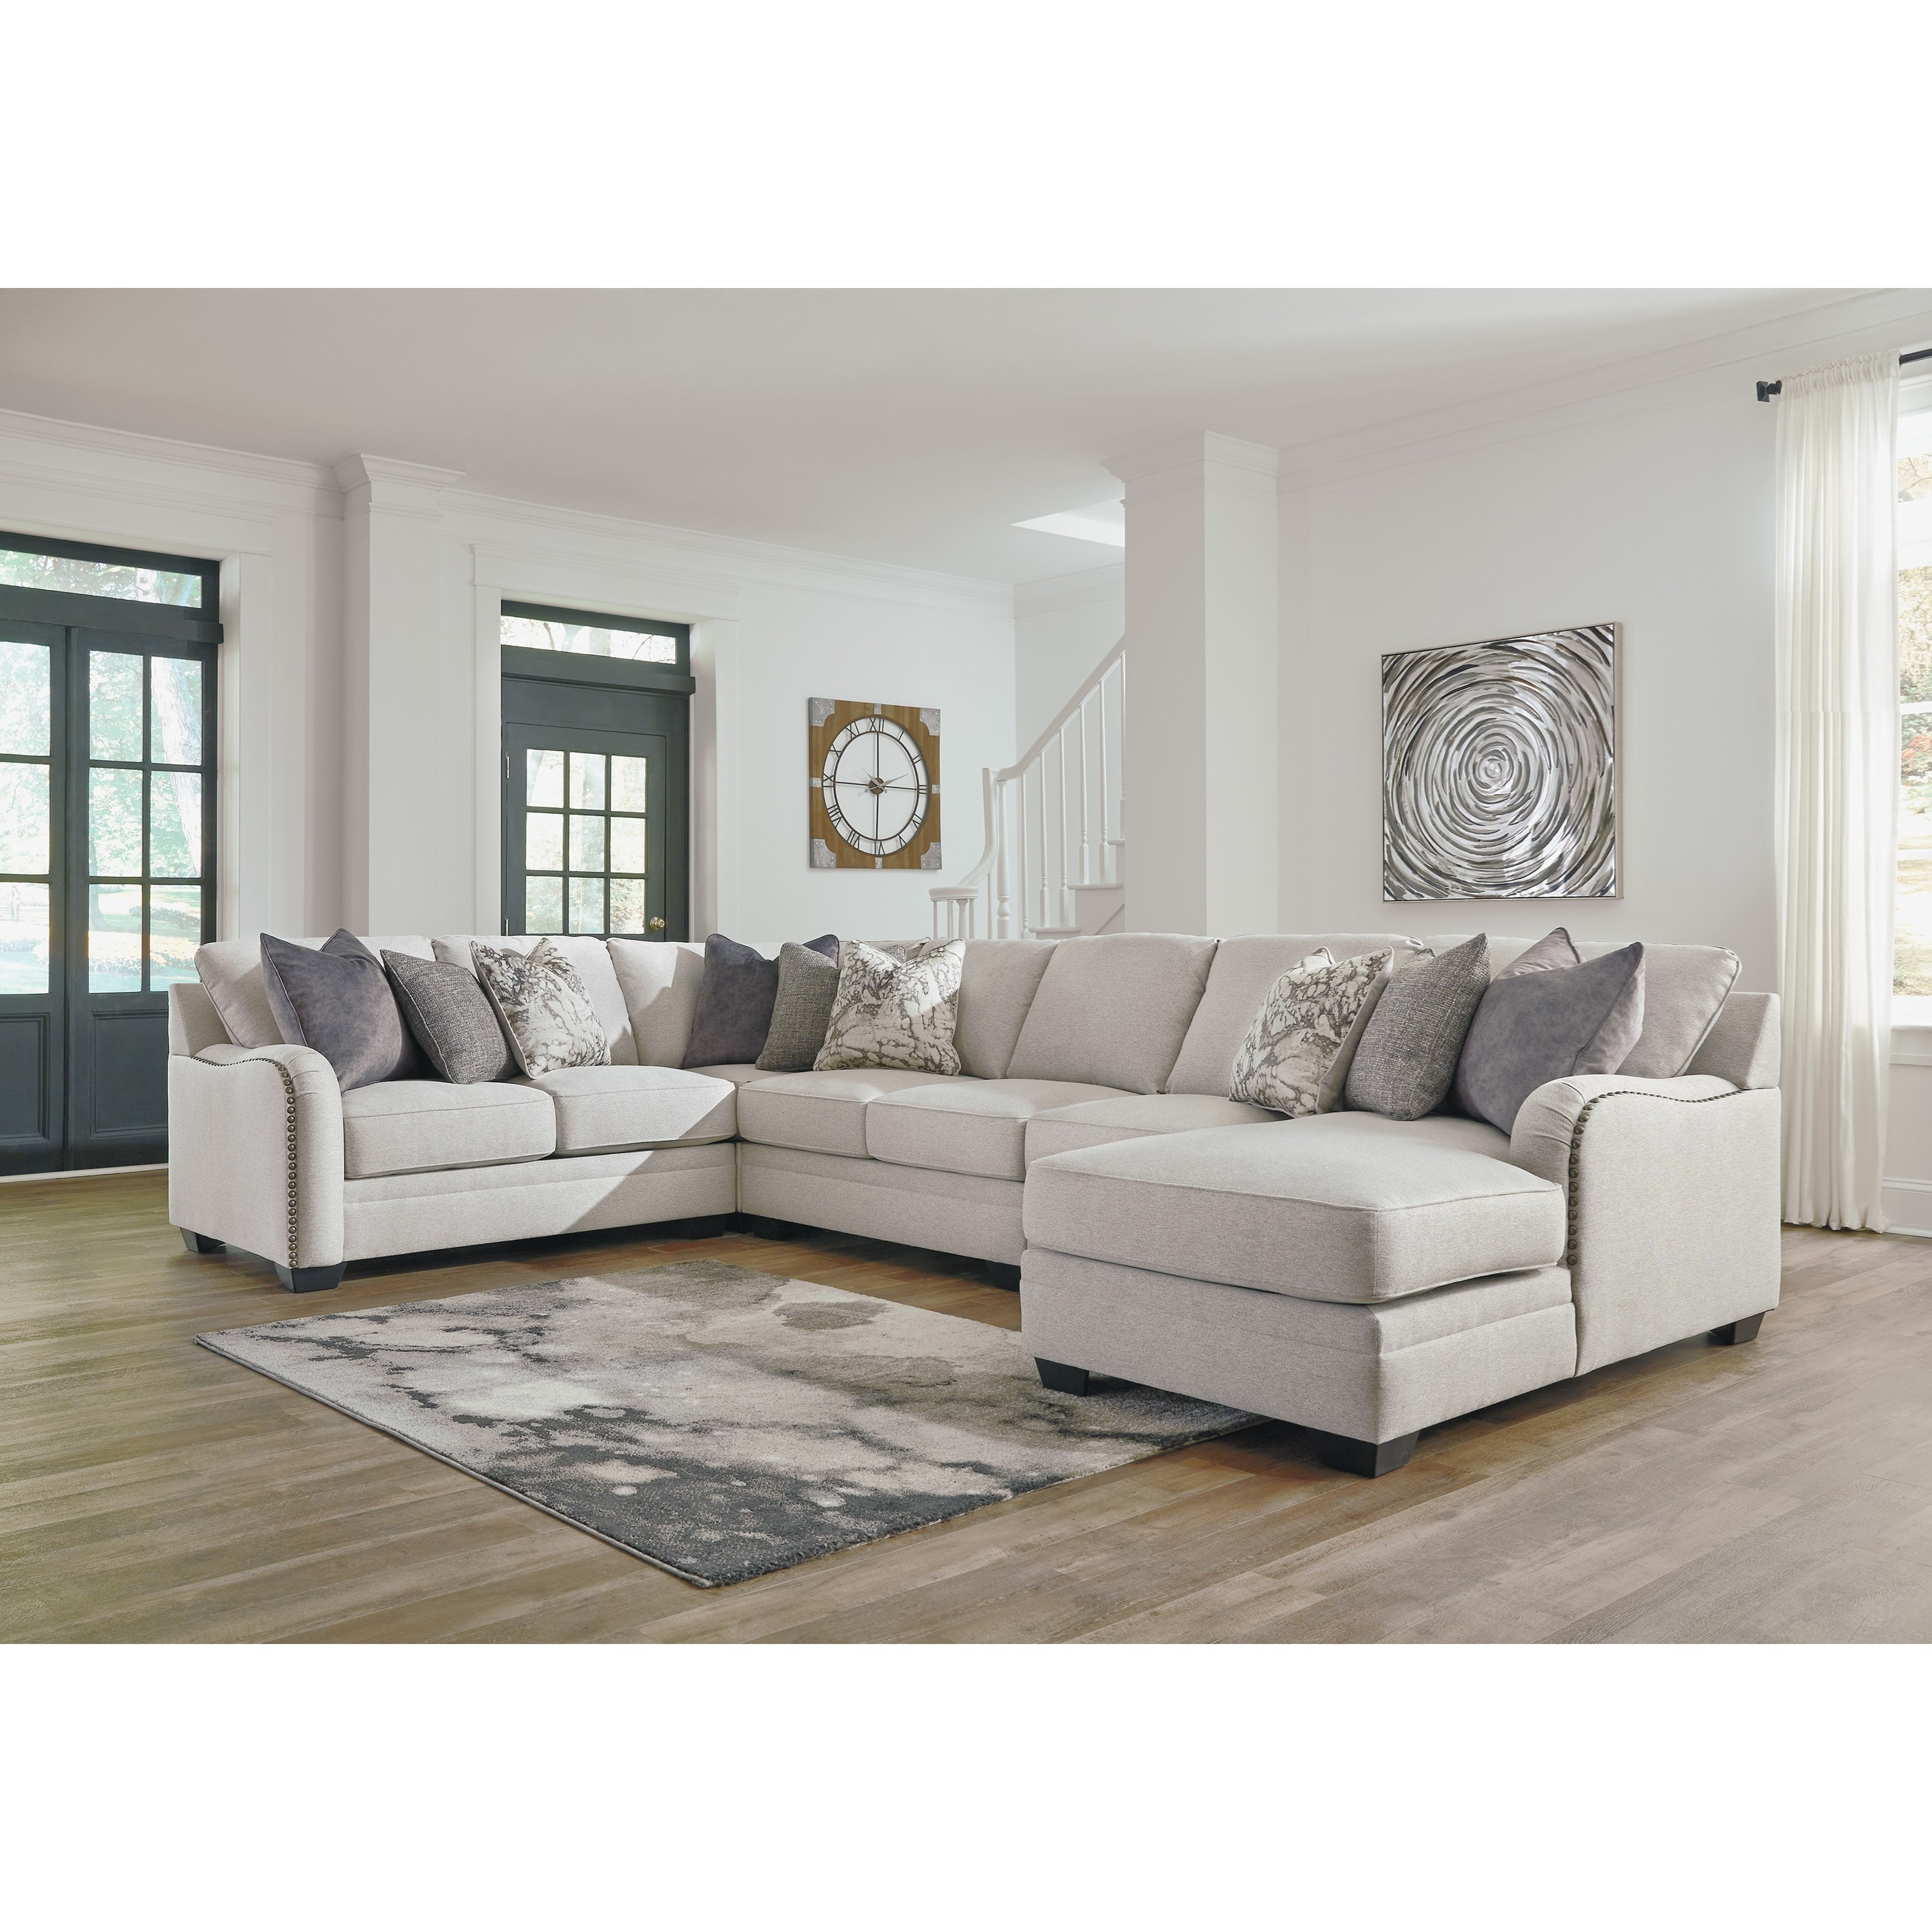 Dellara 5-Piece Sectional by Benchcraft at Northeast Factory Direct